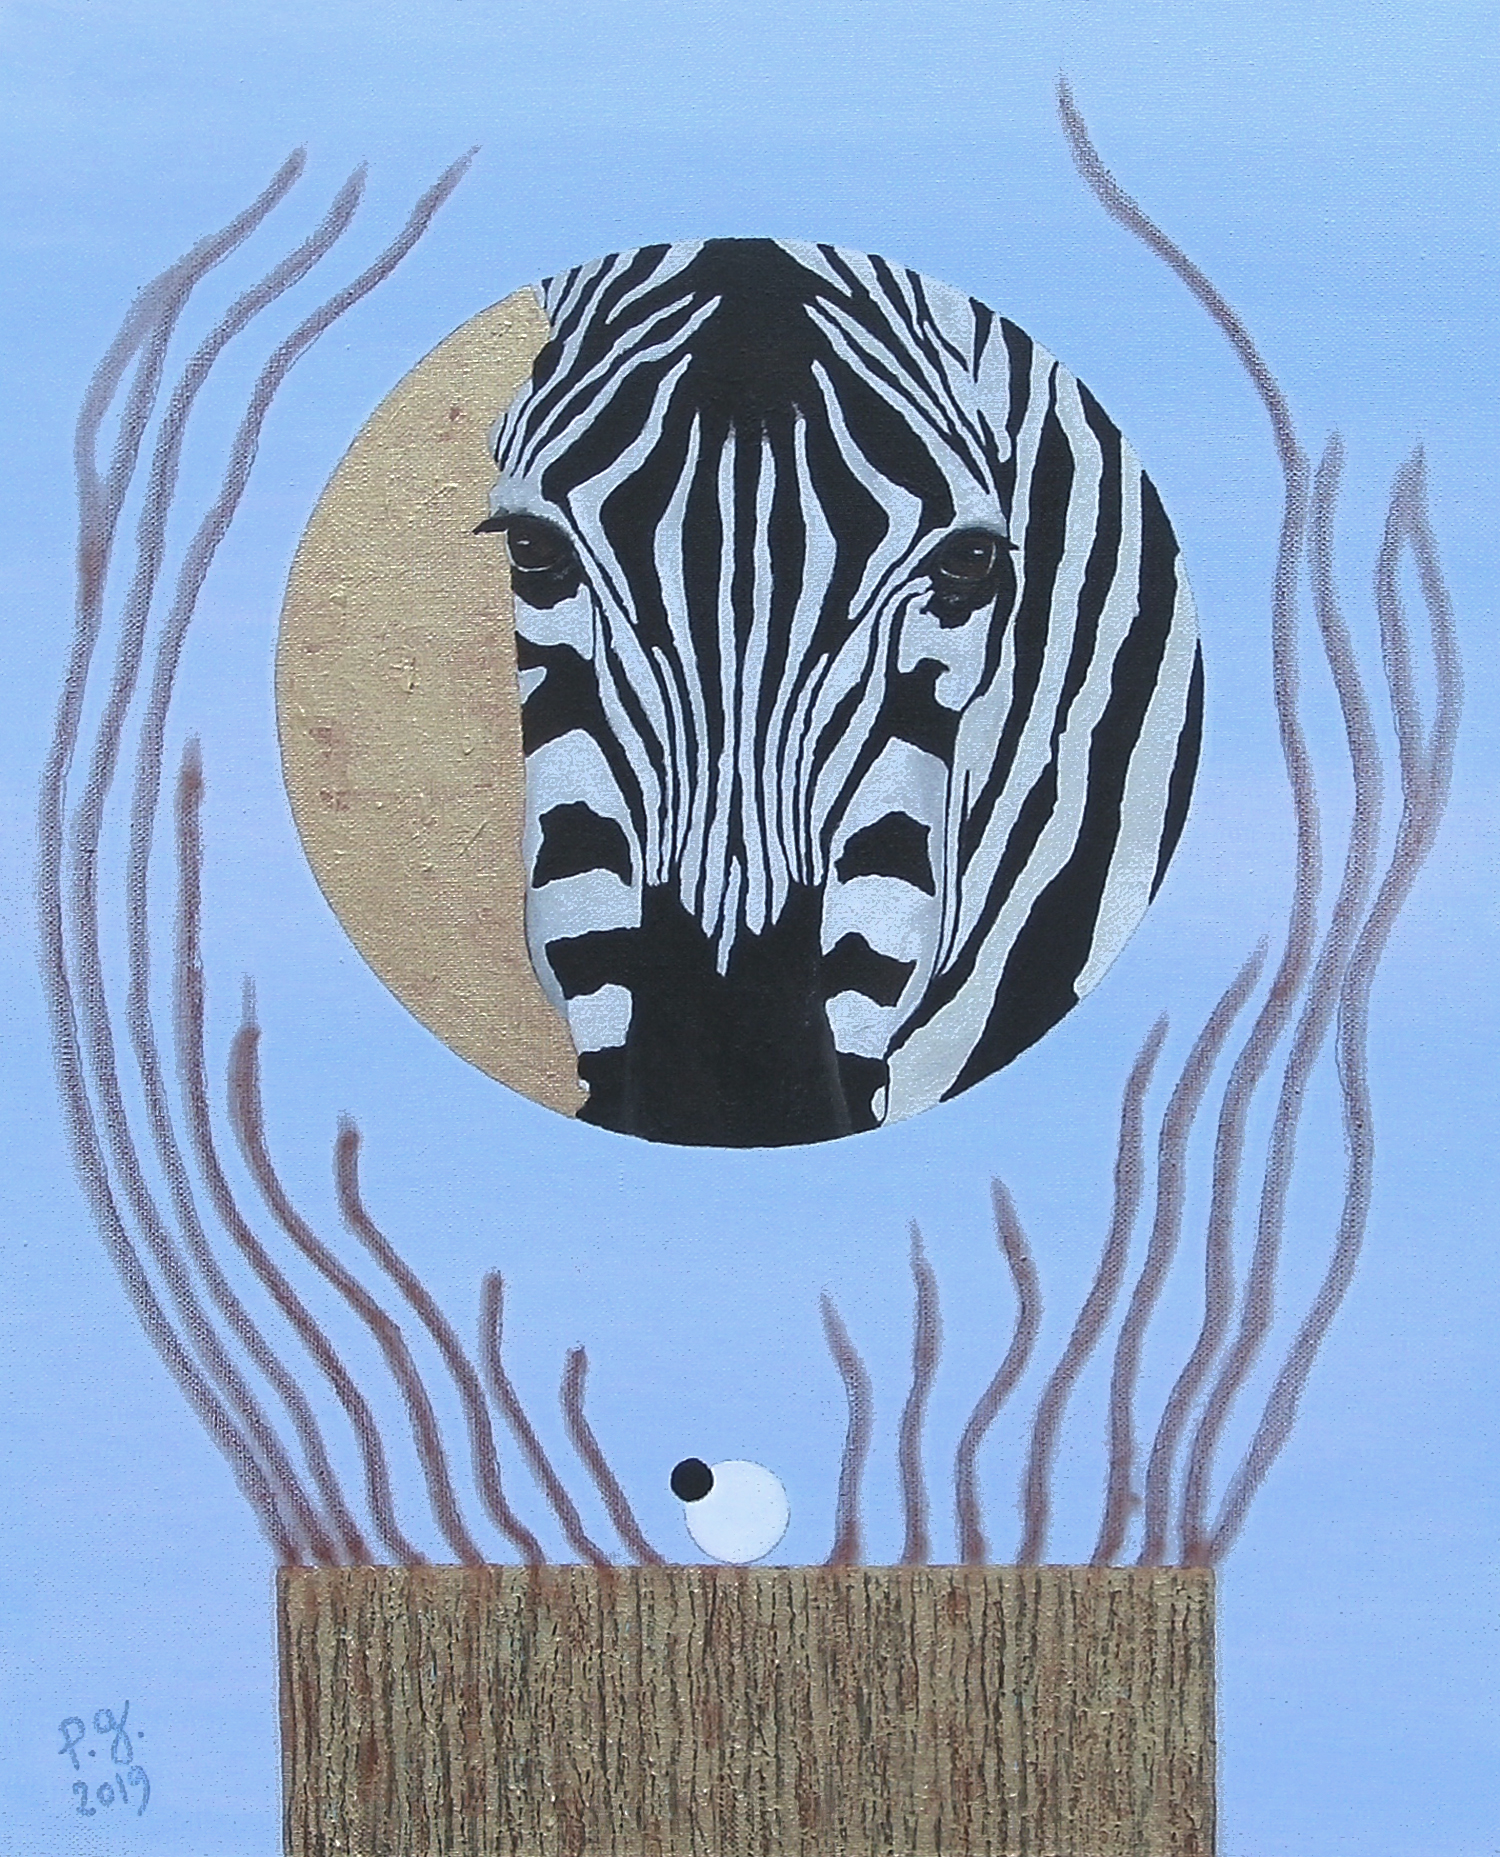 """Zebra And A Few Pieces Of String"" - patrick gourgouillat - 2019"